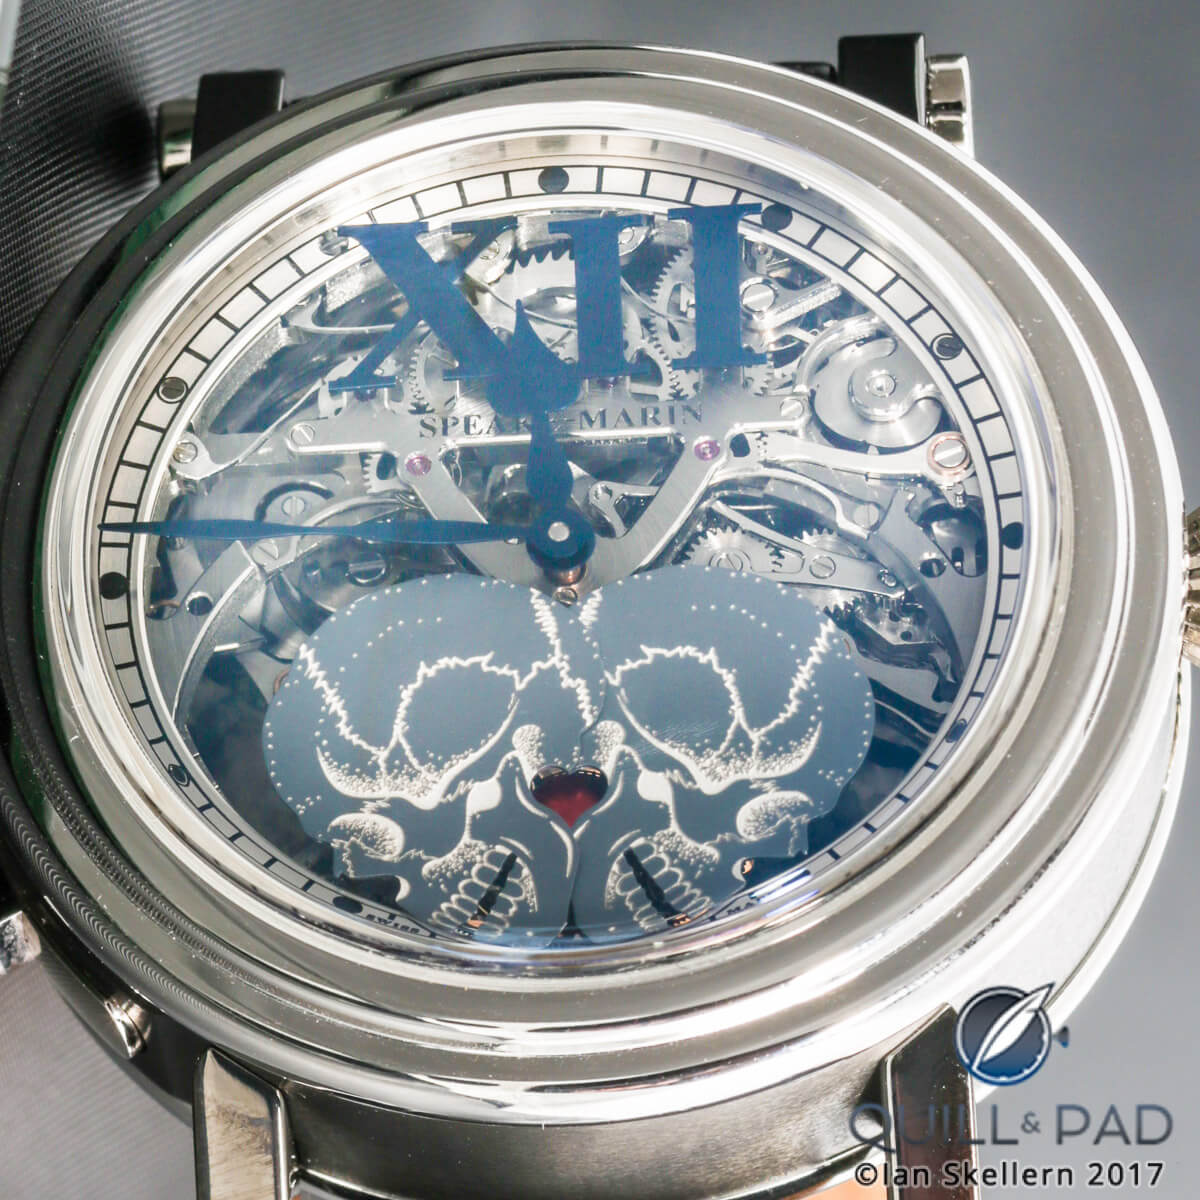 Speake-Marine Crazy Skulls minute repeater tourbillon